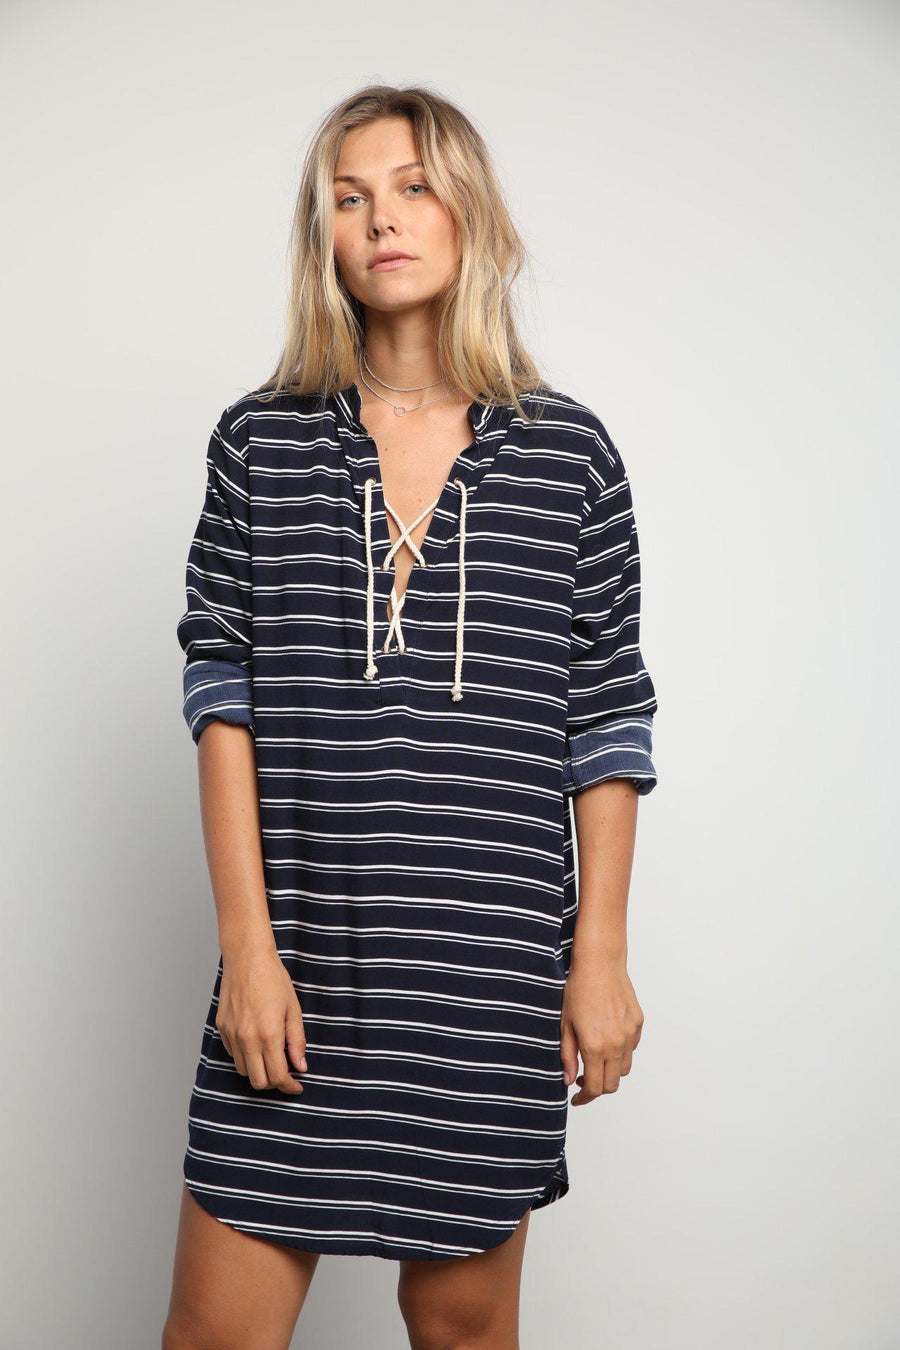 Lilya Rae Dress Stripe